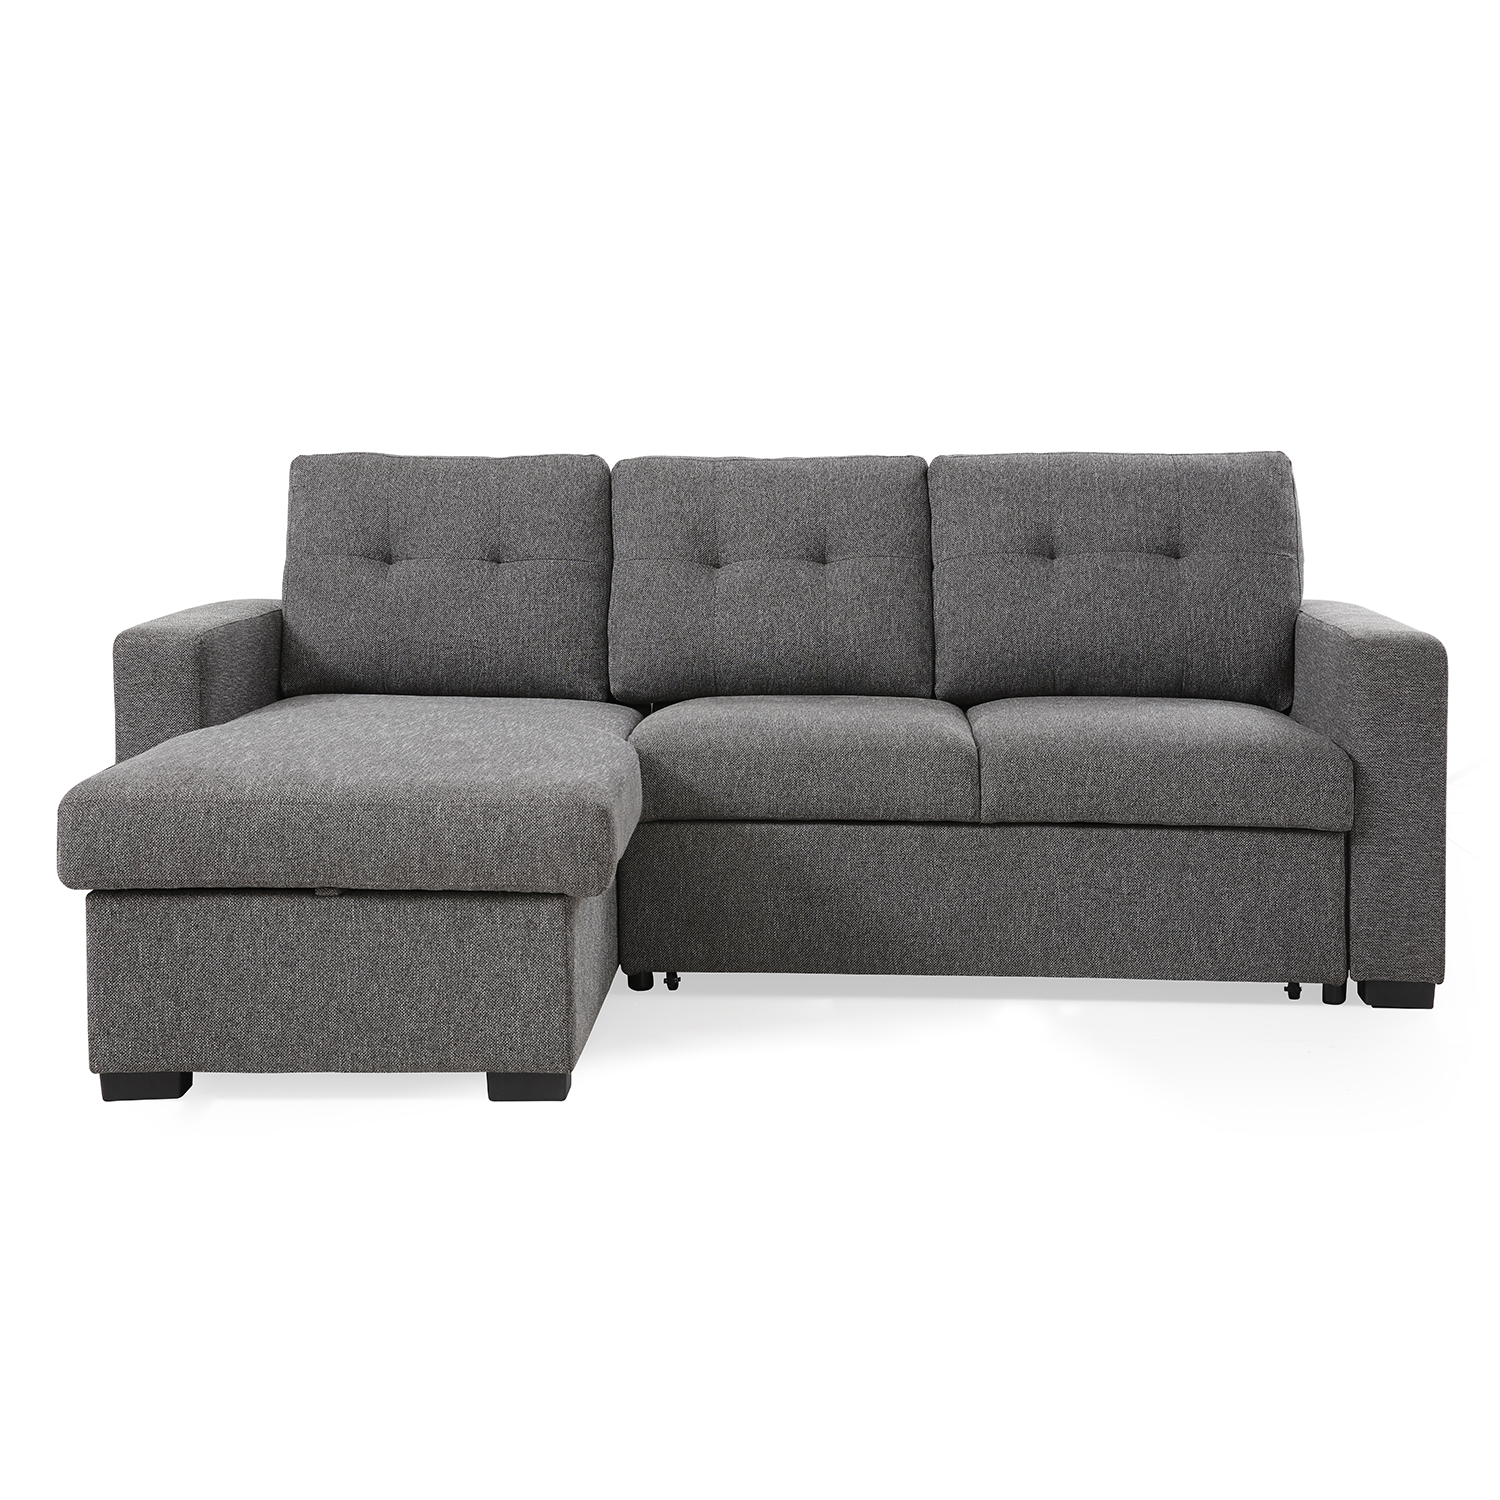 Harrison Corner Sofa Bed Grey